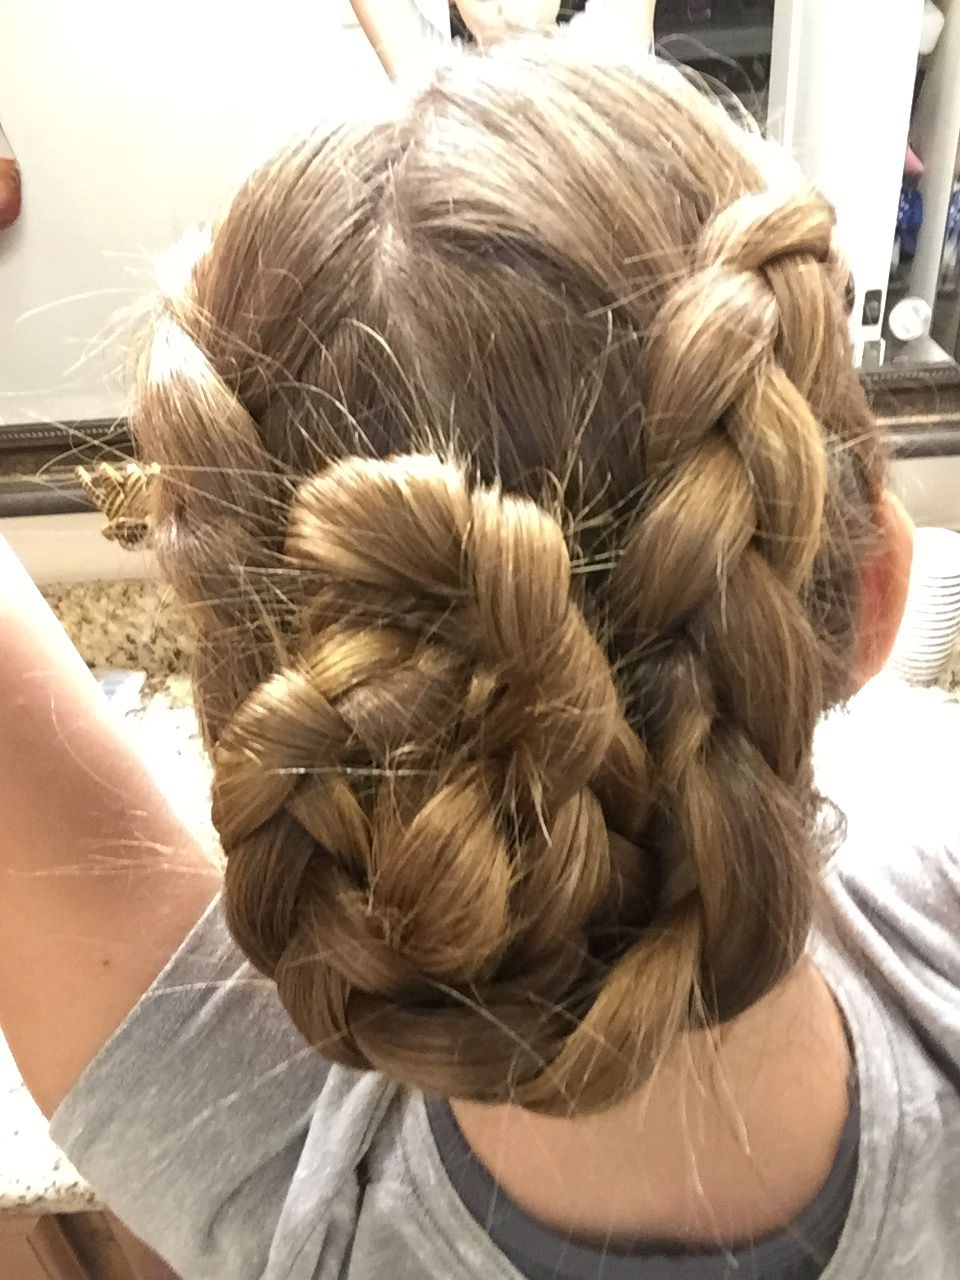 Cute Hair Updo!!! French Braided Pigtails Tied Together At The End In Well Known Pinned Up French Plaits Hairstyles (View 6 of 15)